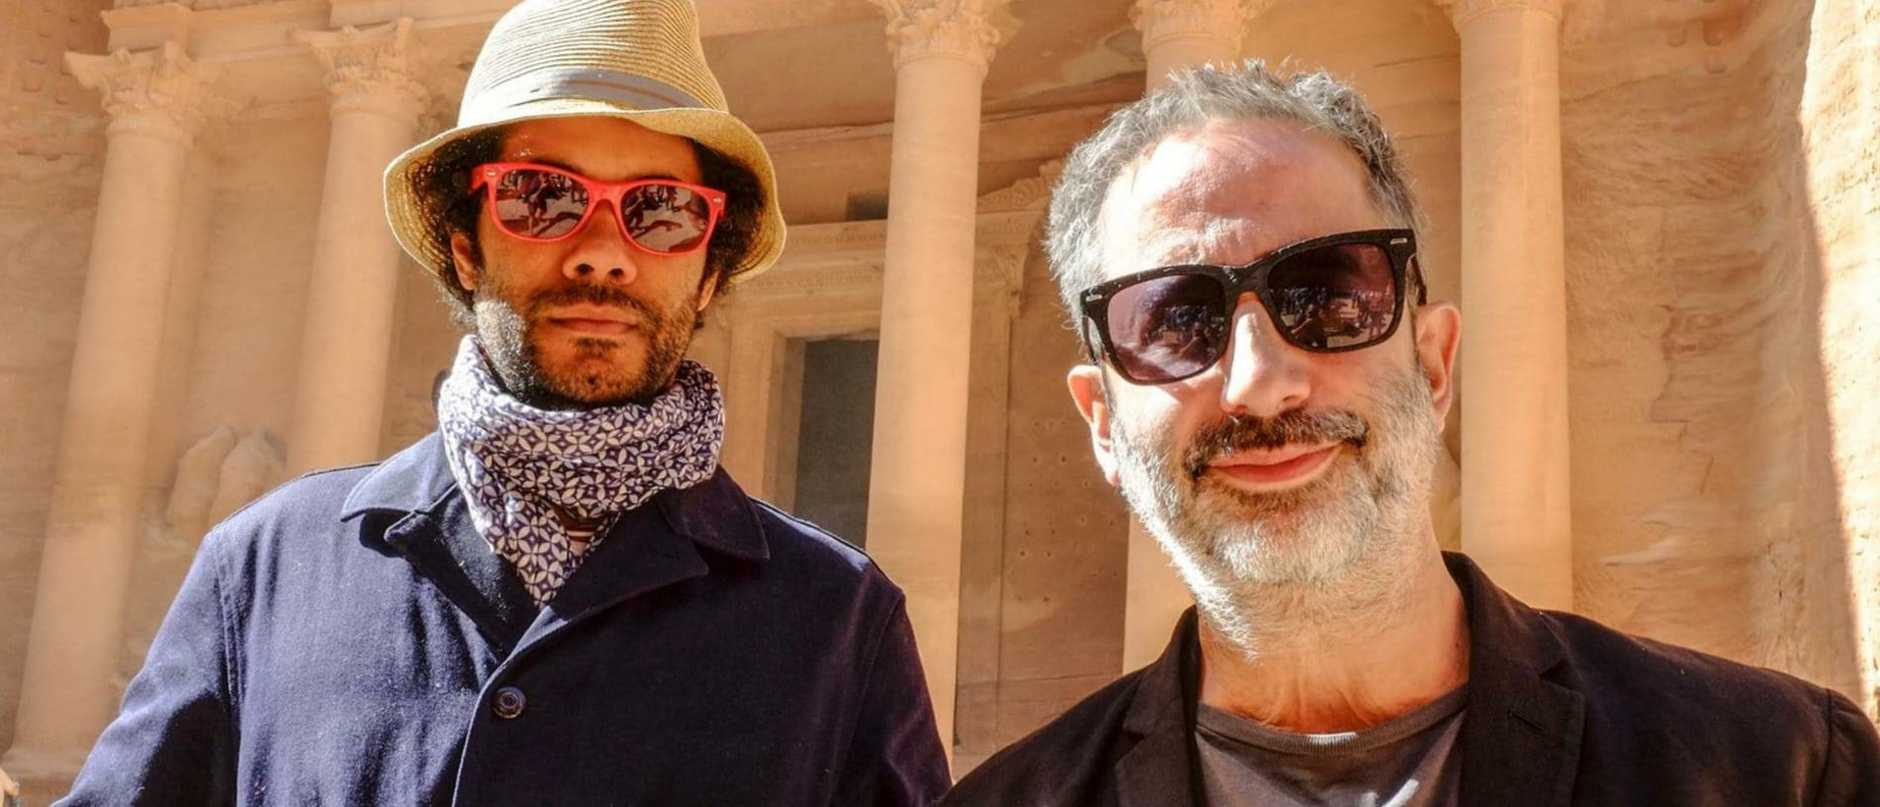 Richard Ayoade and comedian David Baddiel in a scene from Travel Man.